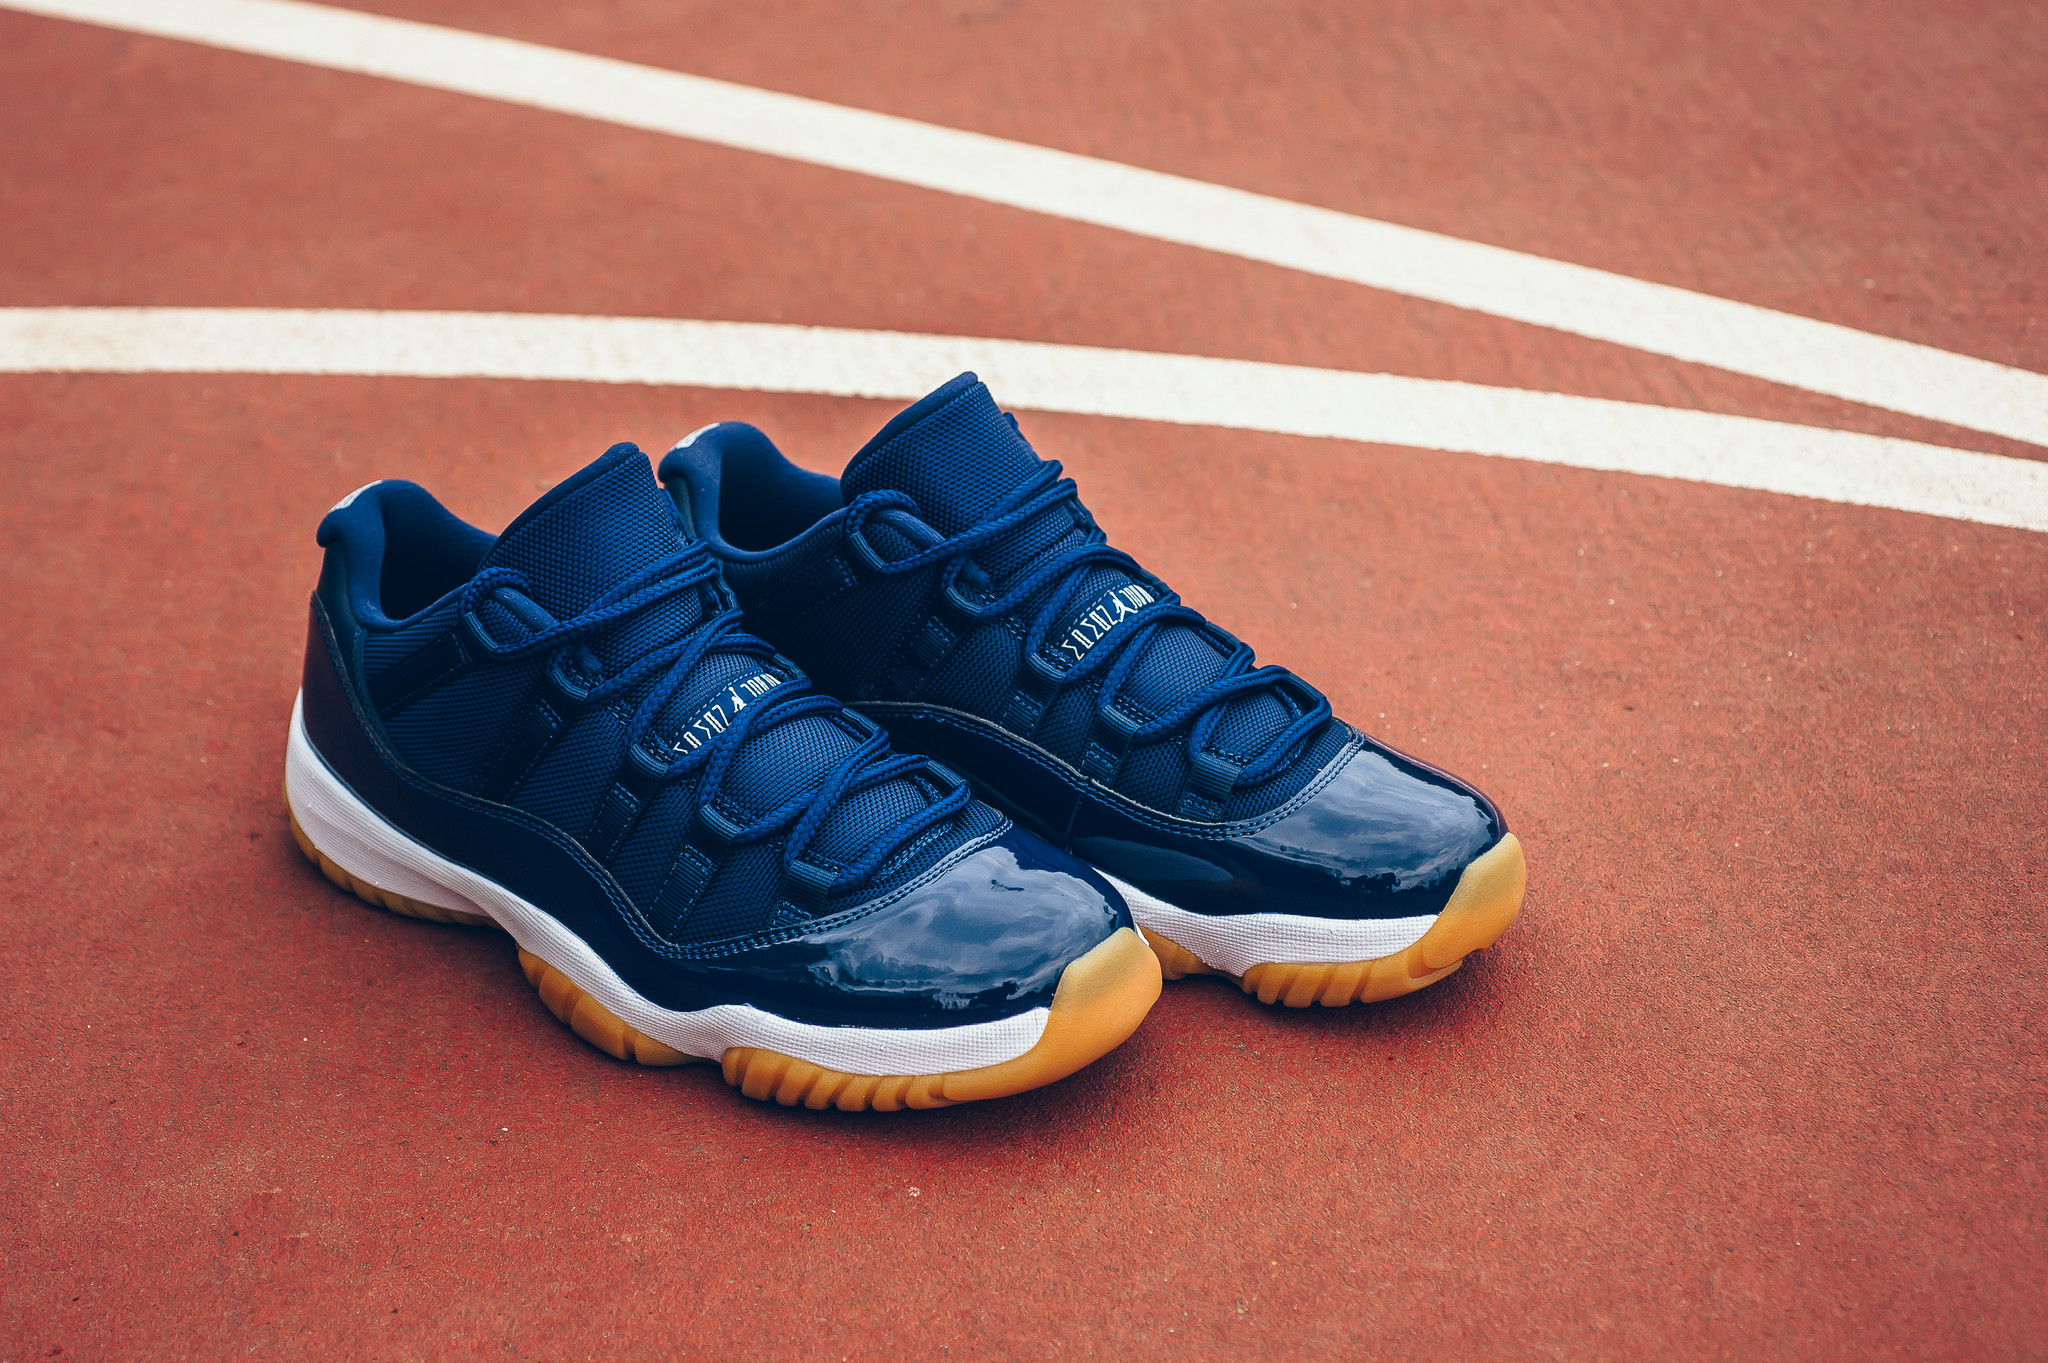 new product 460ac 19bd9 Air Jordan XI Retro Low Midnight Navy - New Images - Air 23 ...